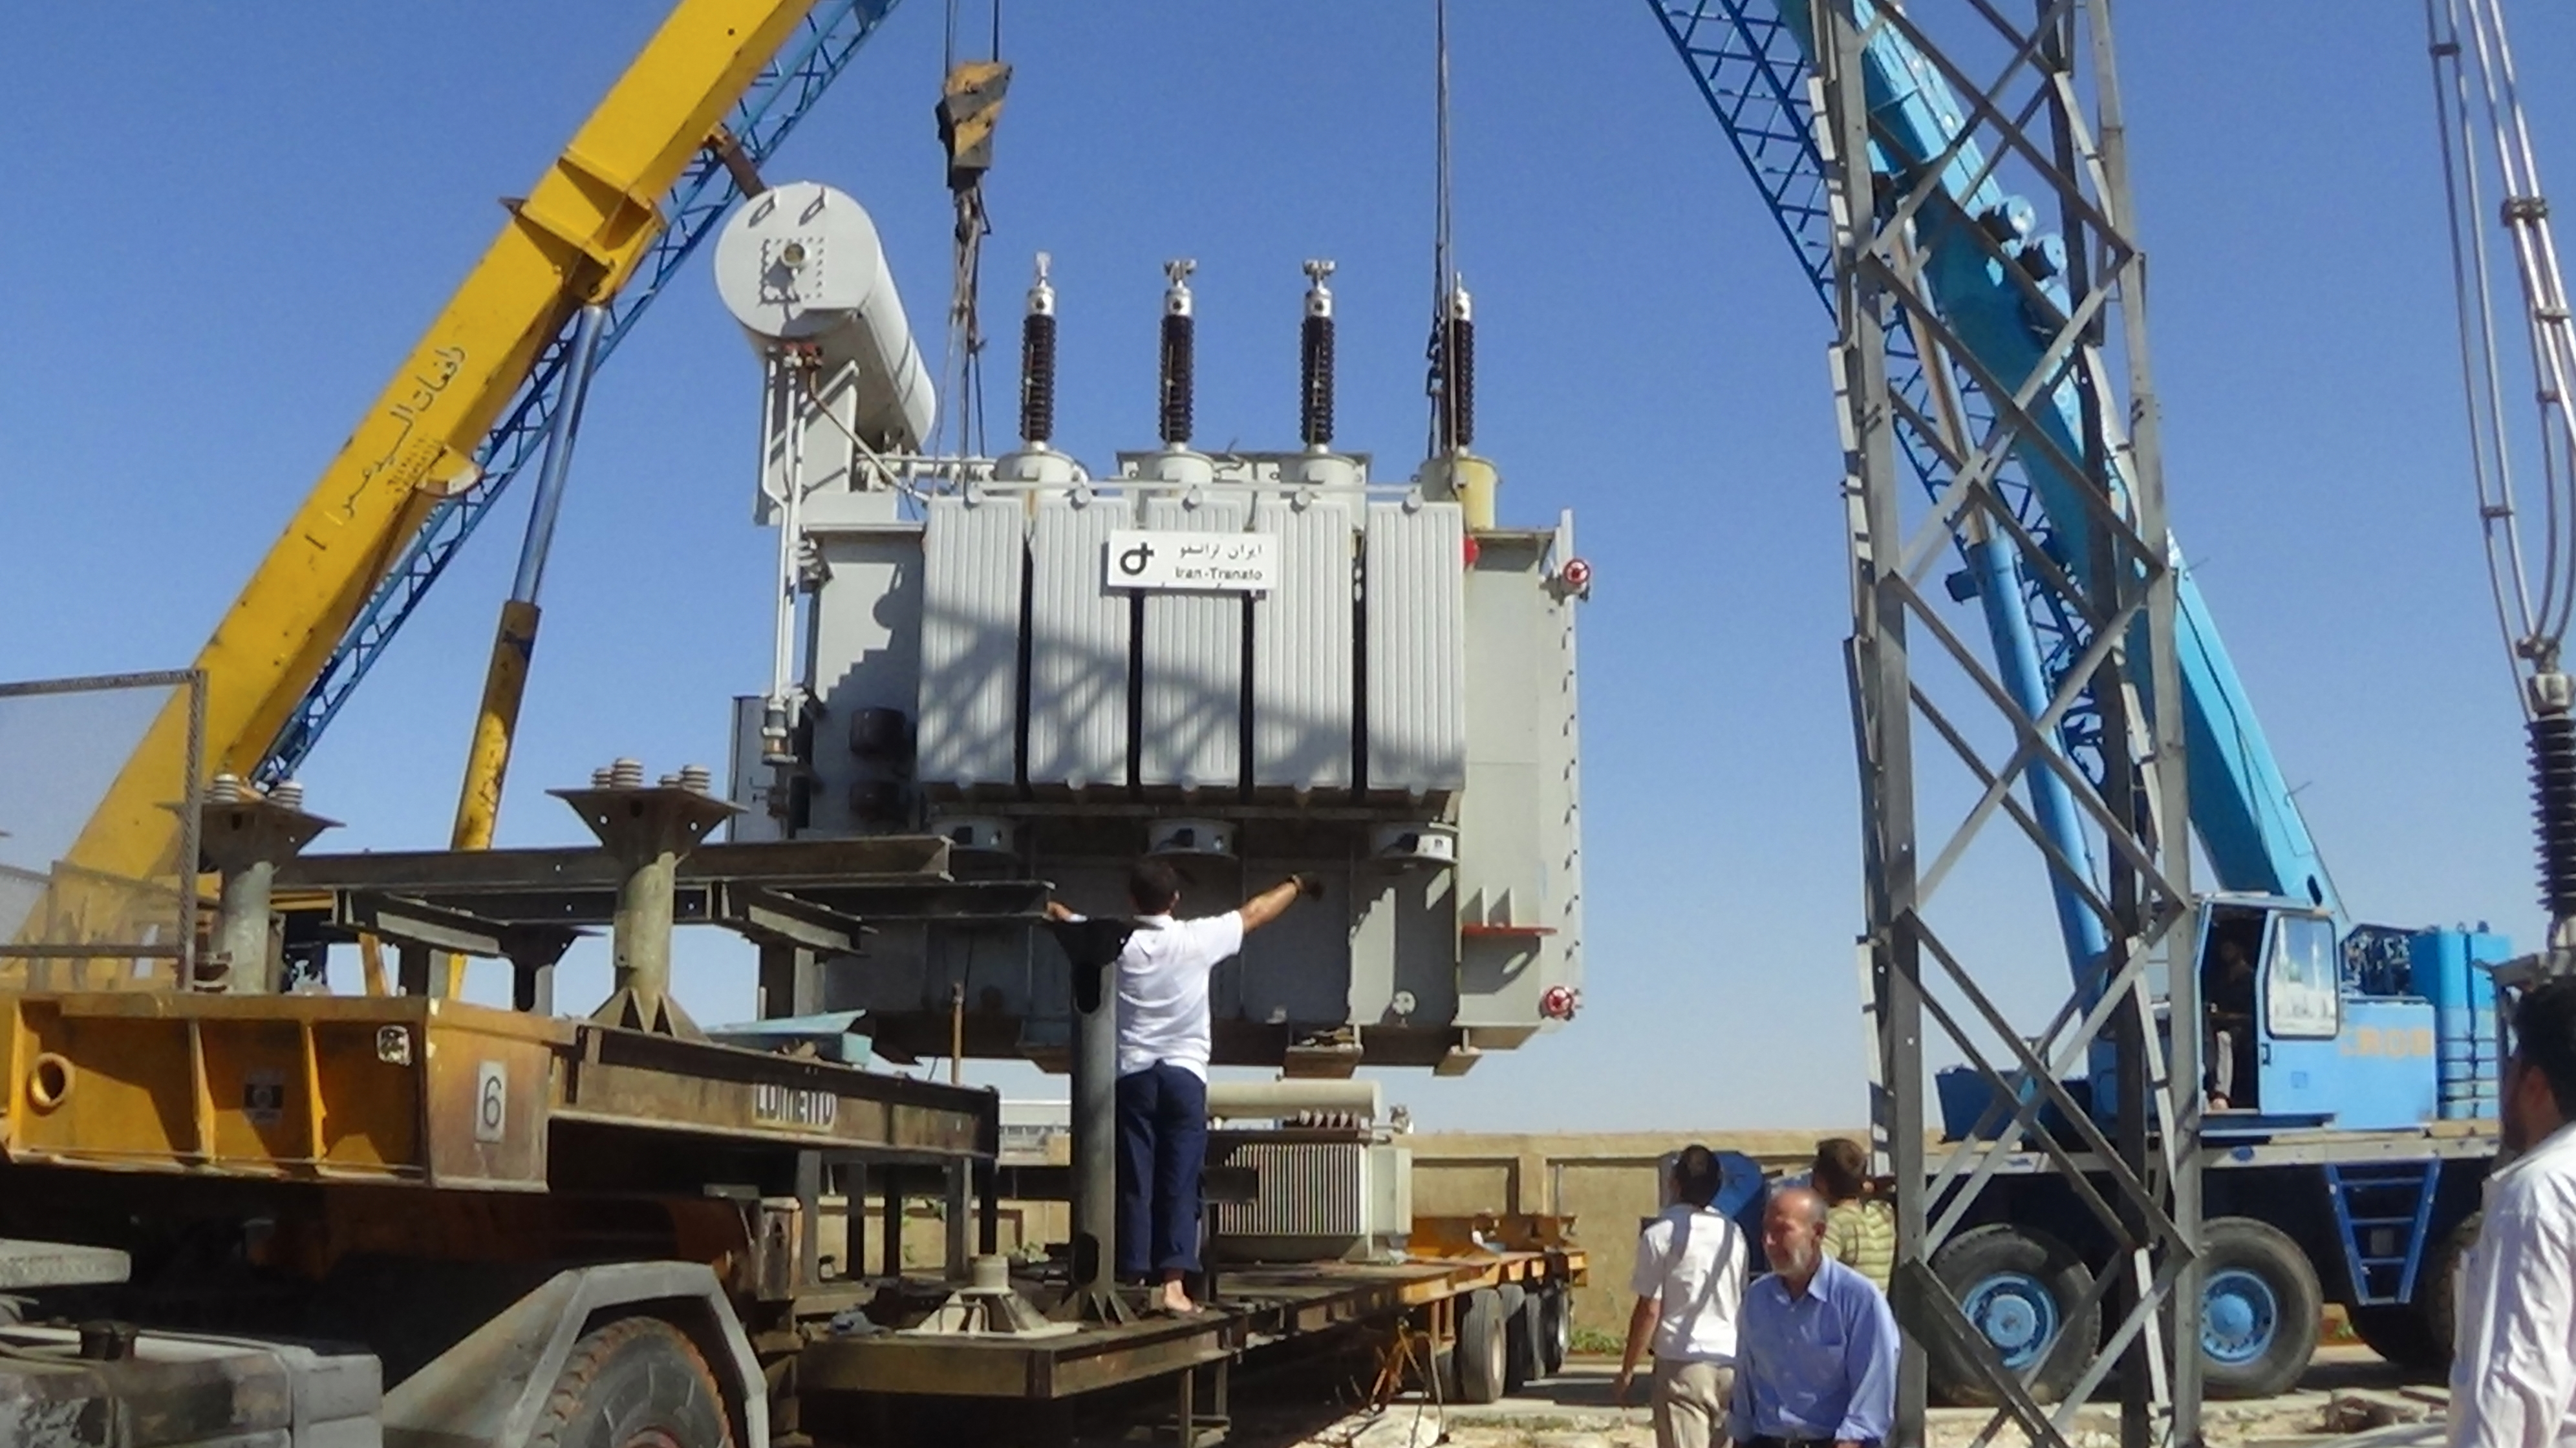 A generator the size of a pick-up truck hangs from a crane, technicians conduct the unloading